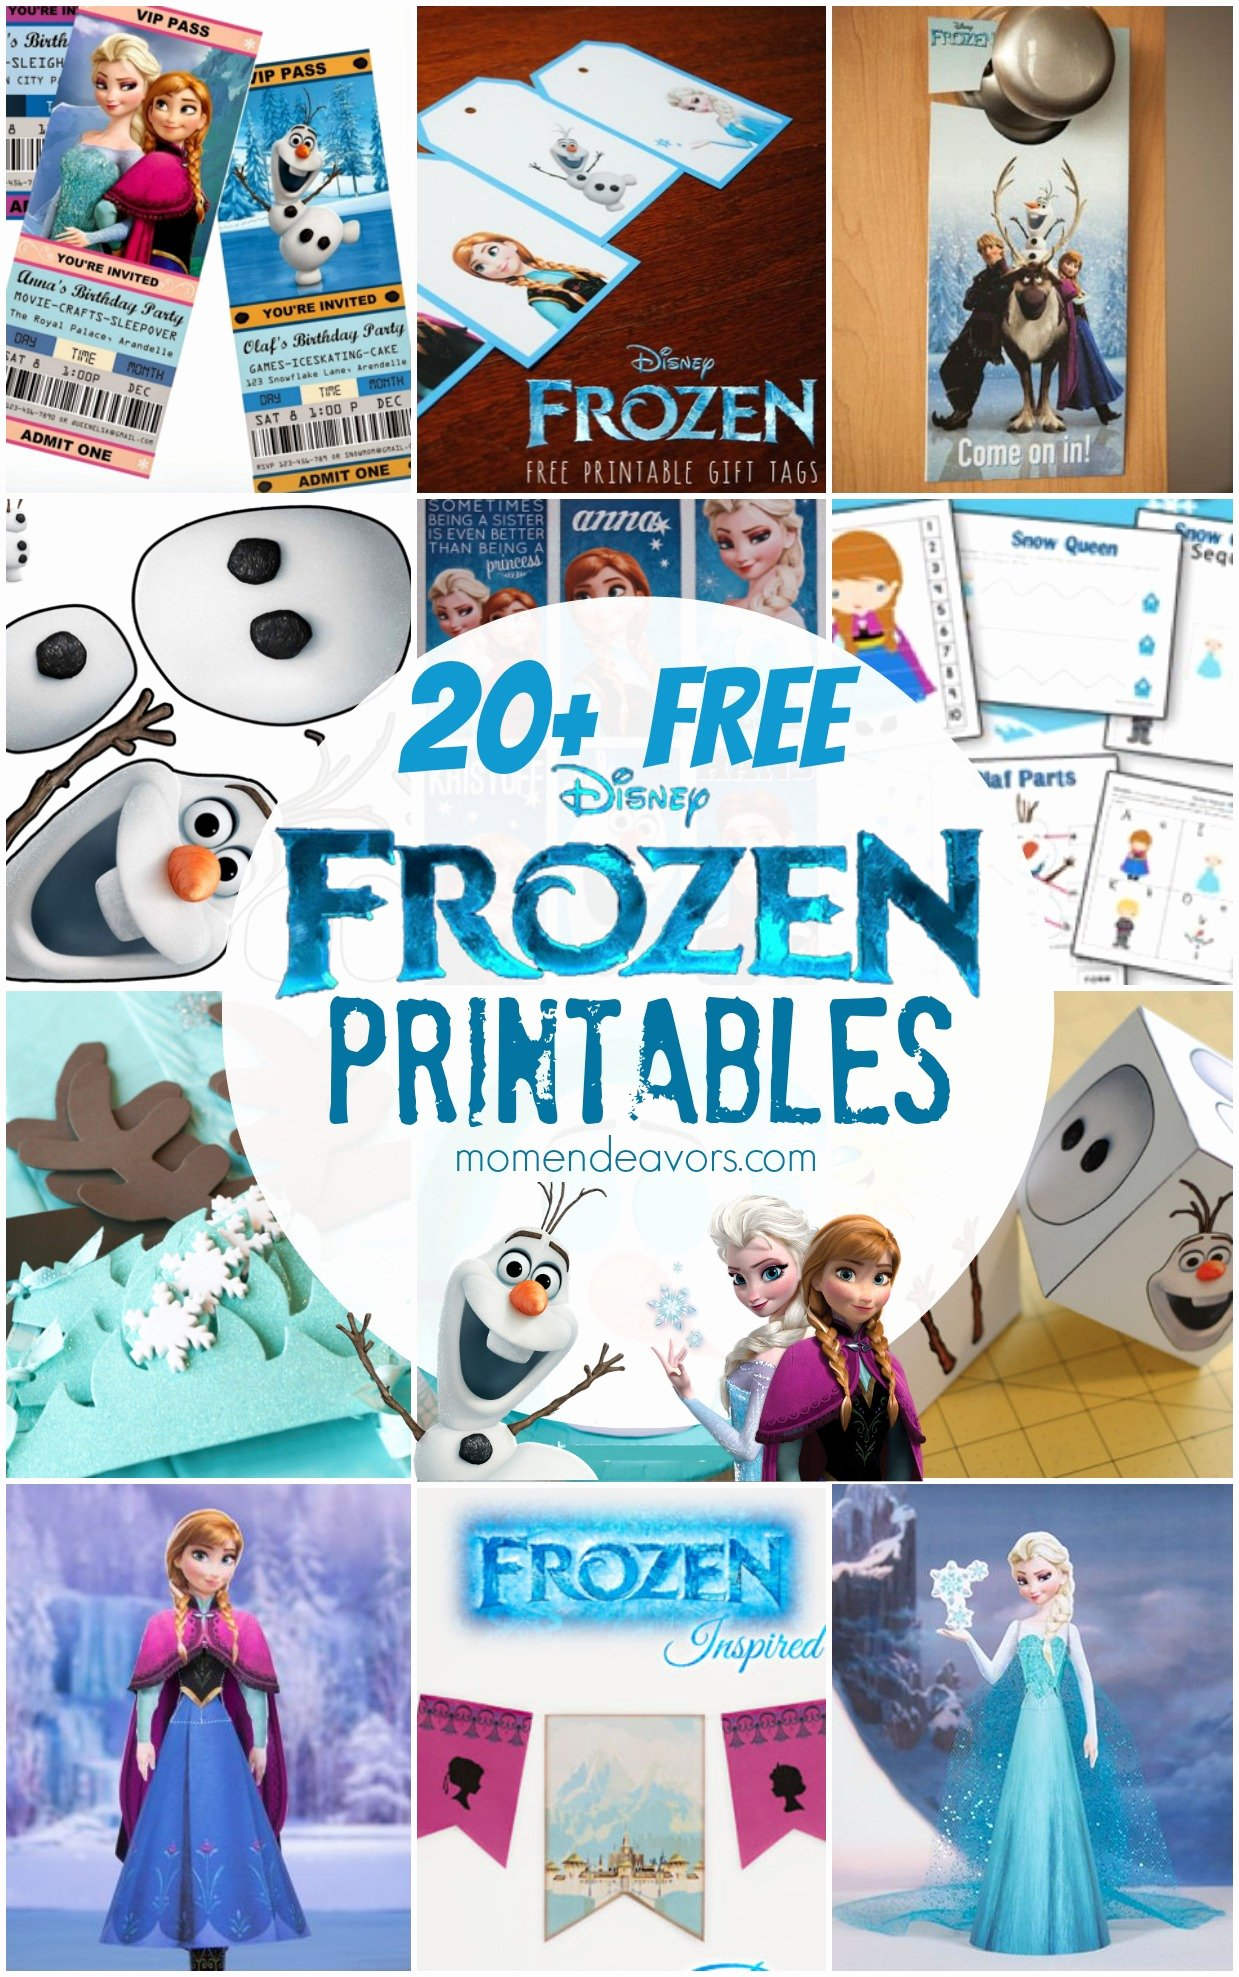 Frozen Worksheets for Preschoolers Beautiful 20 Free Disney Frozen Printables Activity Sheets & Party